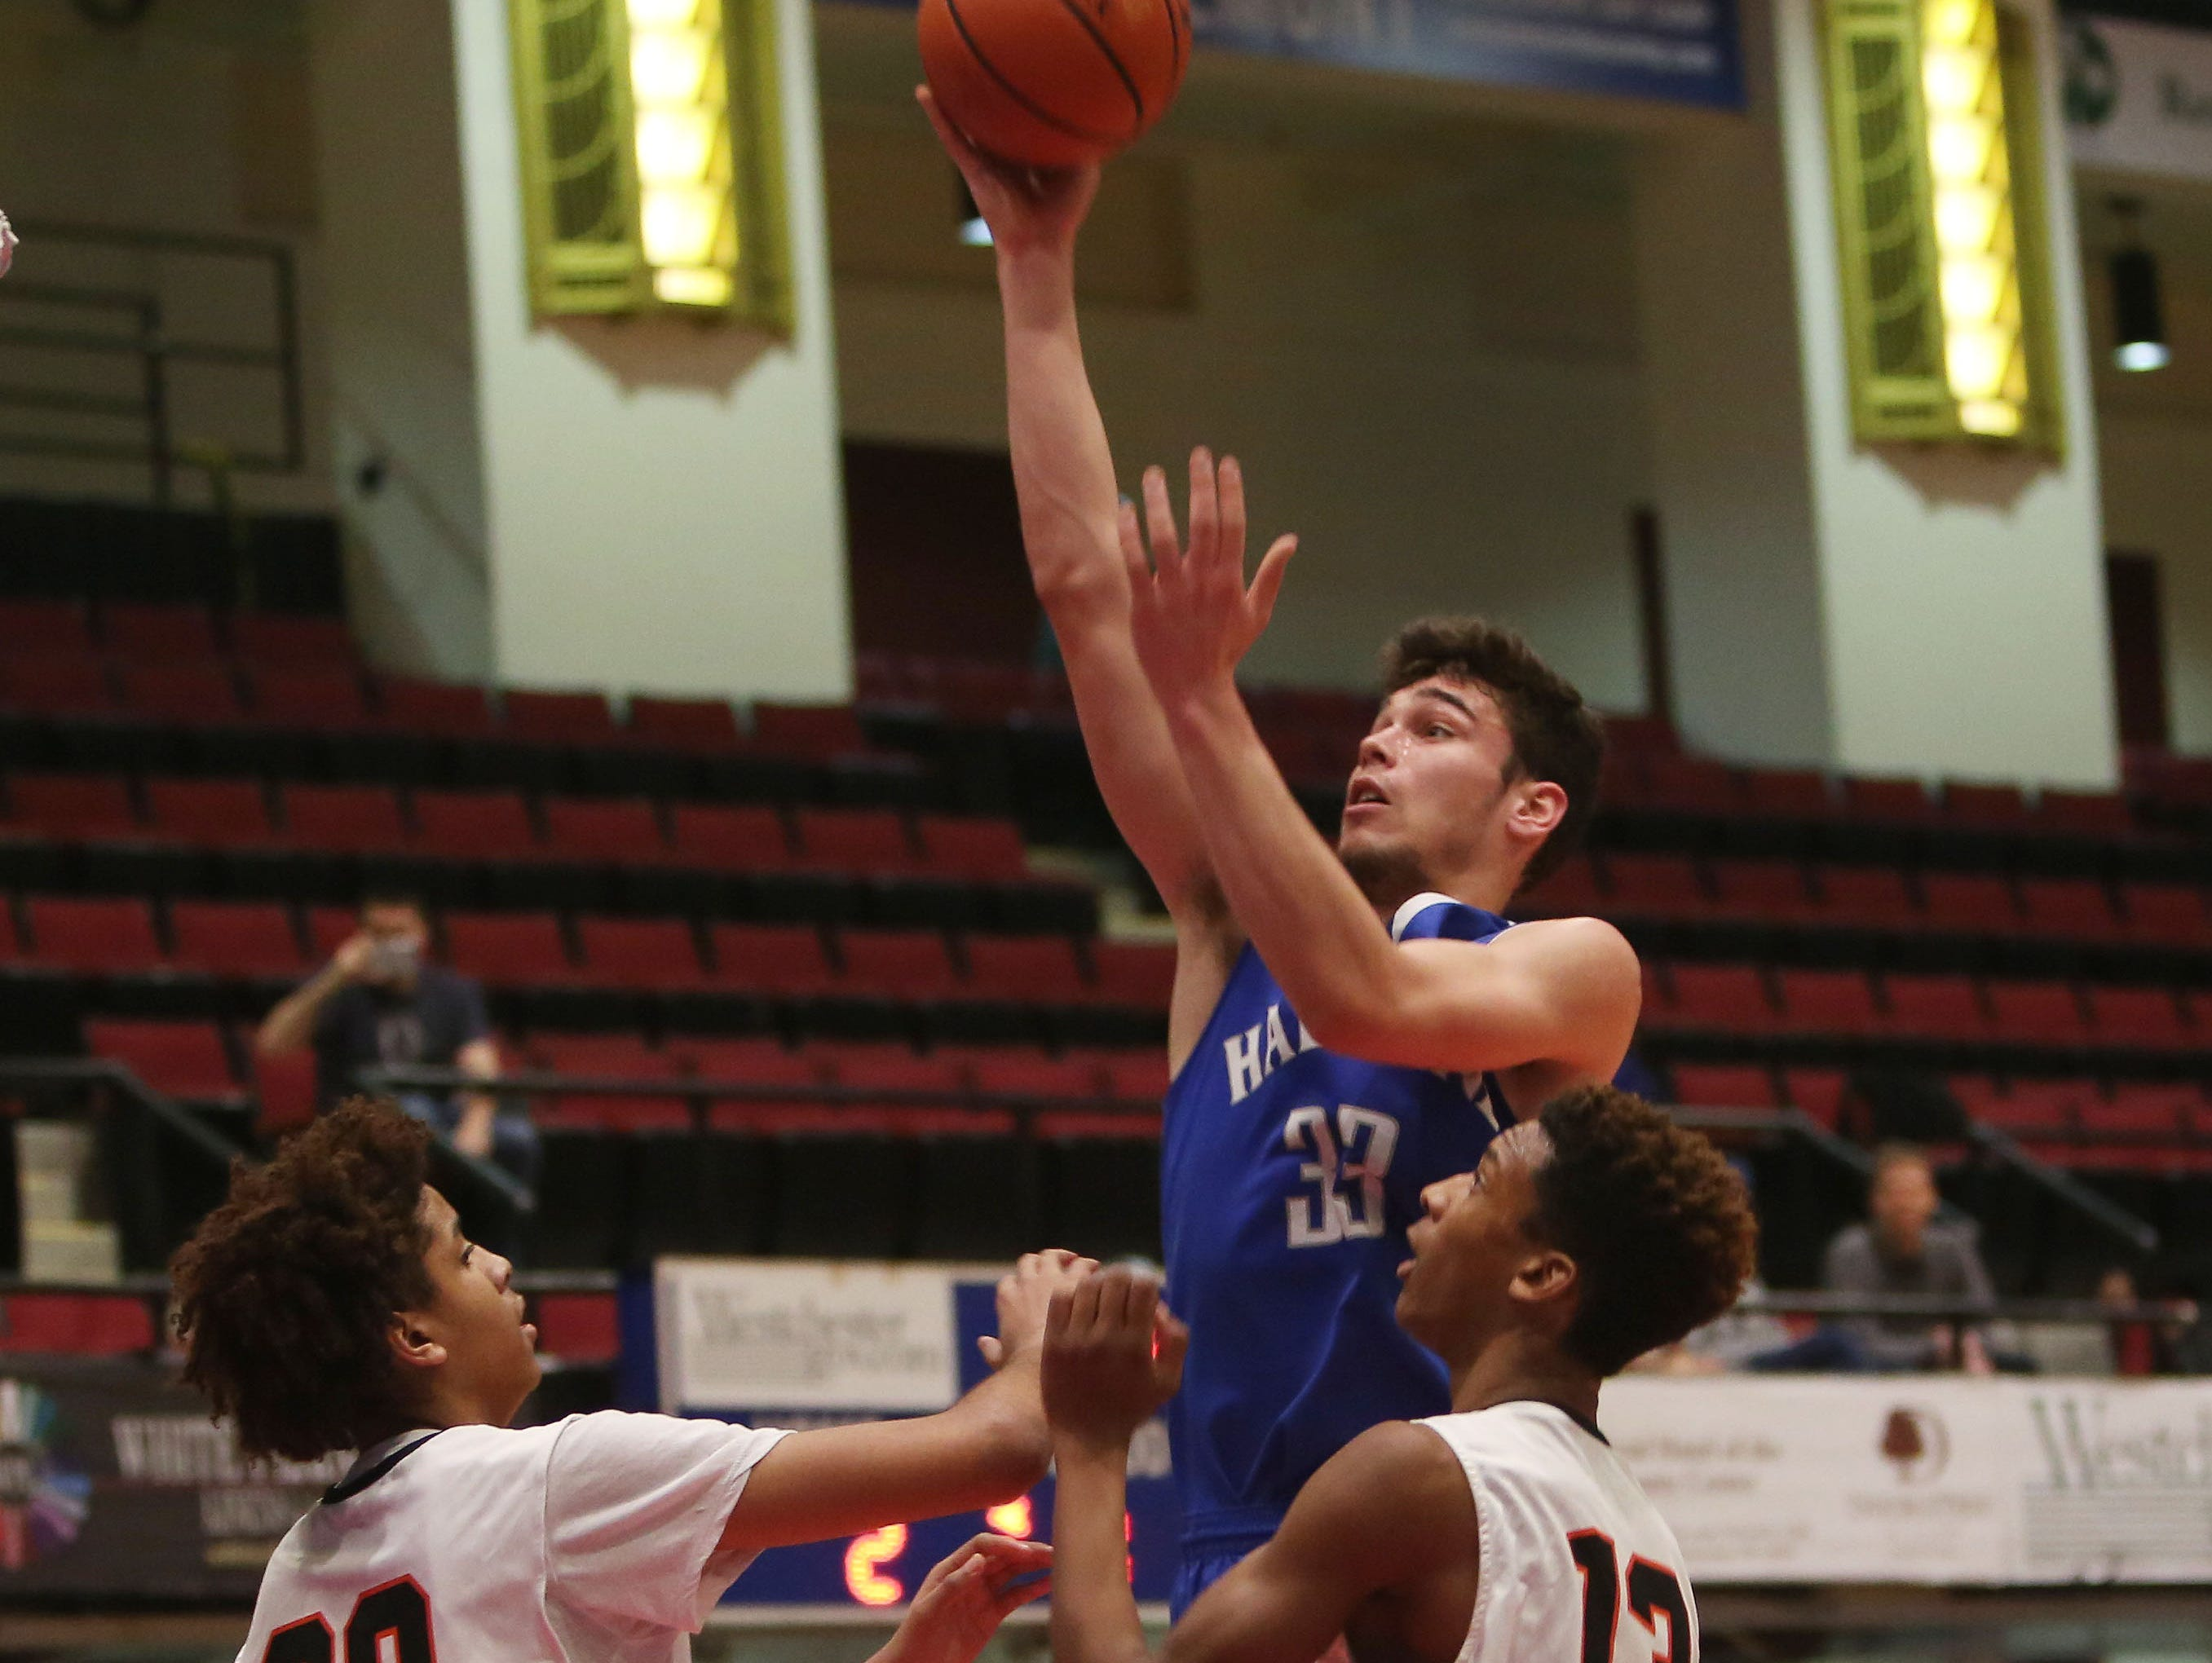 Haldane's Will Zuvic (33) goes up for a shot in front of Tuckahoe's Bryan Murray (30) and Alexander Williams (13) during first half action in the boys Class C semifinal at the Westchester County Center in White Plains Feb. 24, 2016. Haldane won the game 44-34.